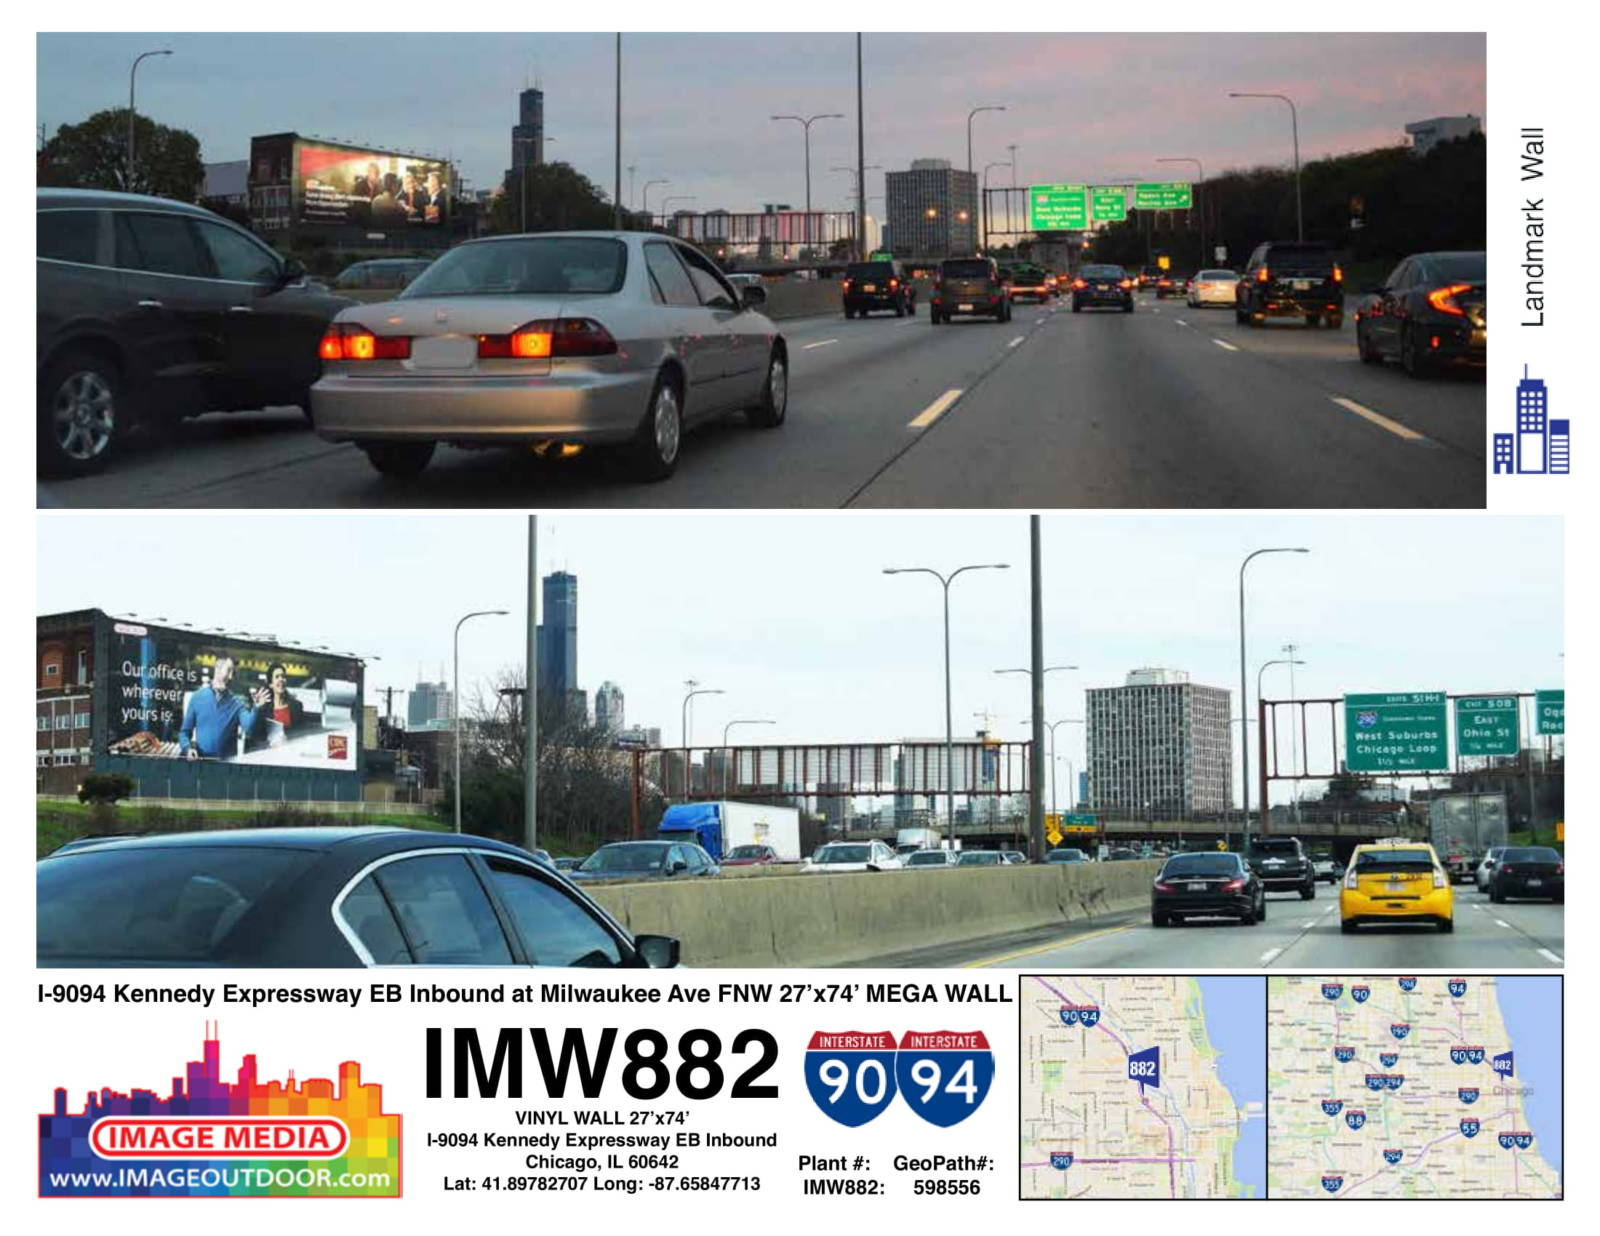 IMW882 - billboard on I90/94 eastbound at Milwaukee Ave.